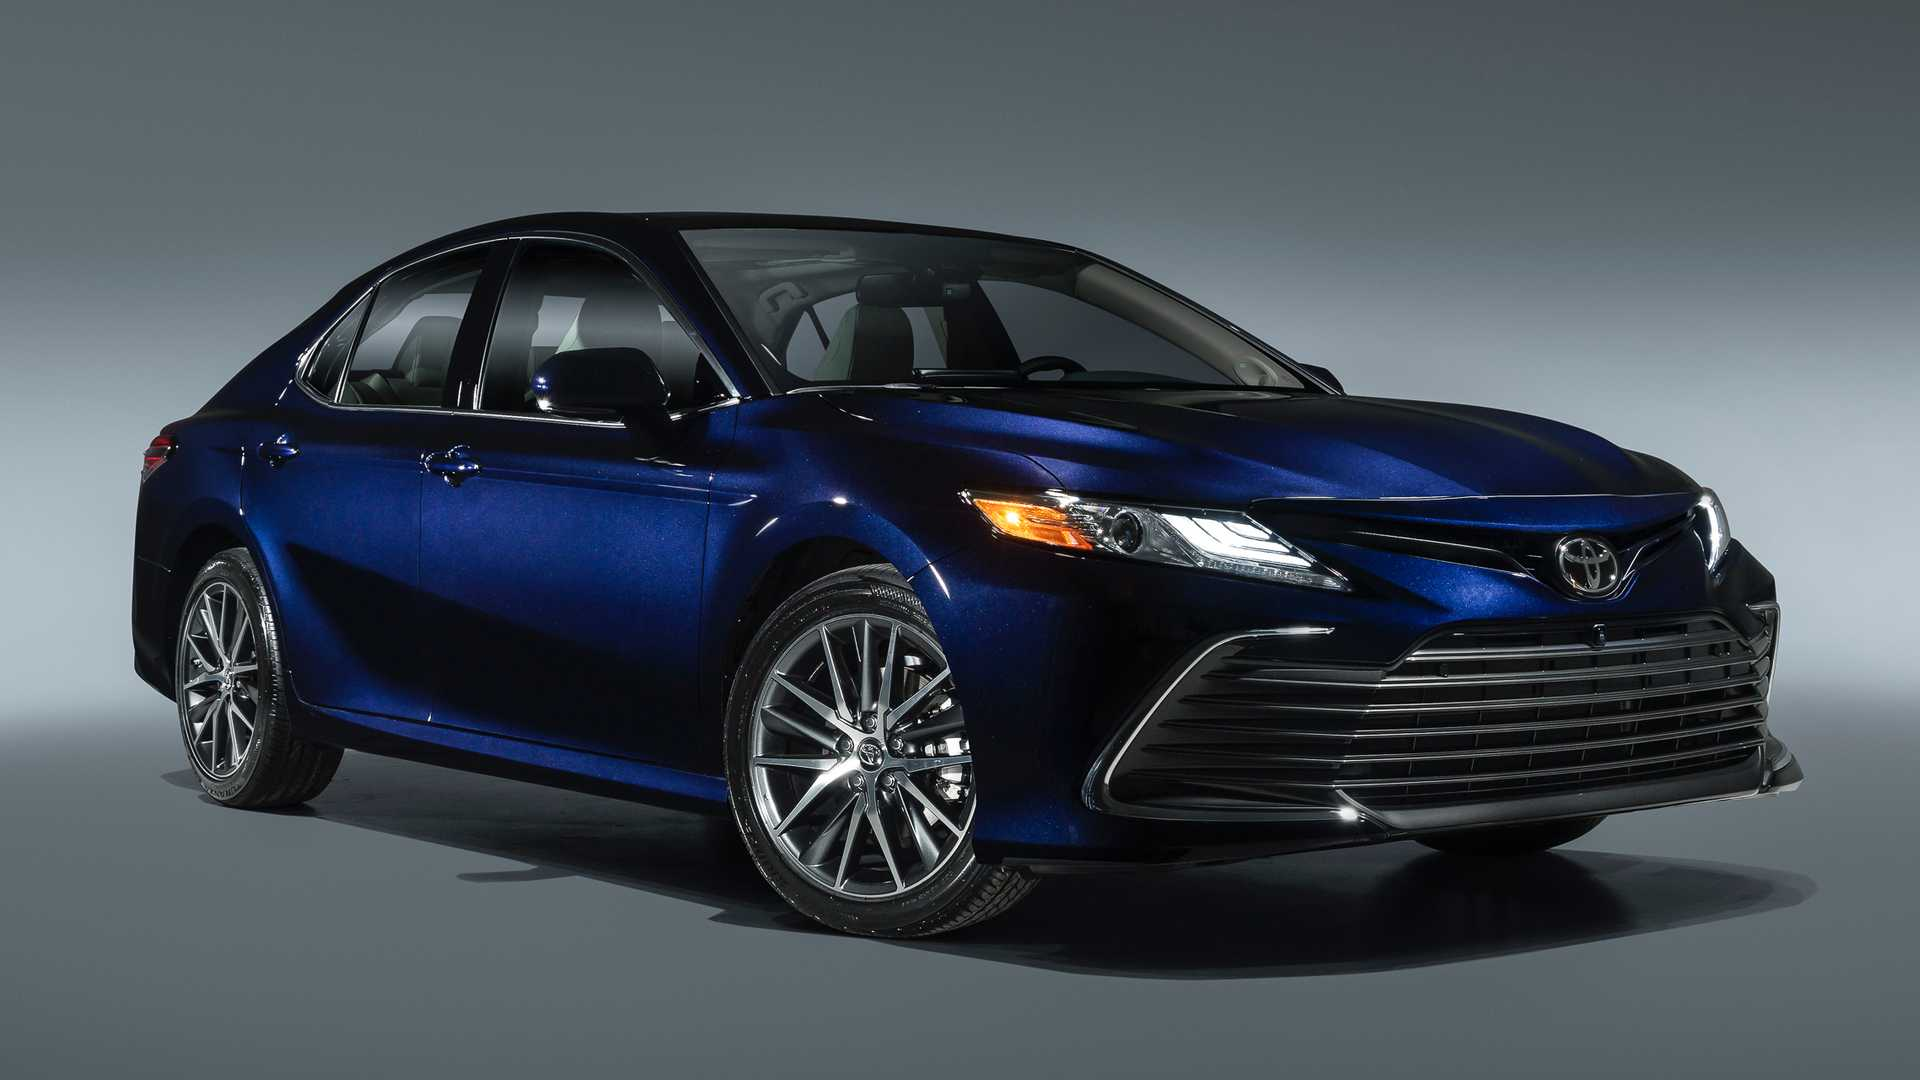 2018 - [Toyota] Camry - Page 4 2021-toyota-camry-xle